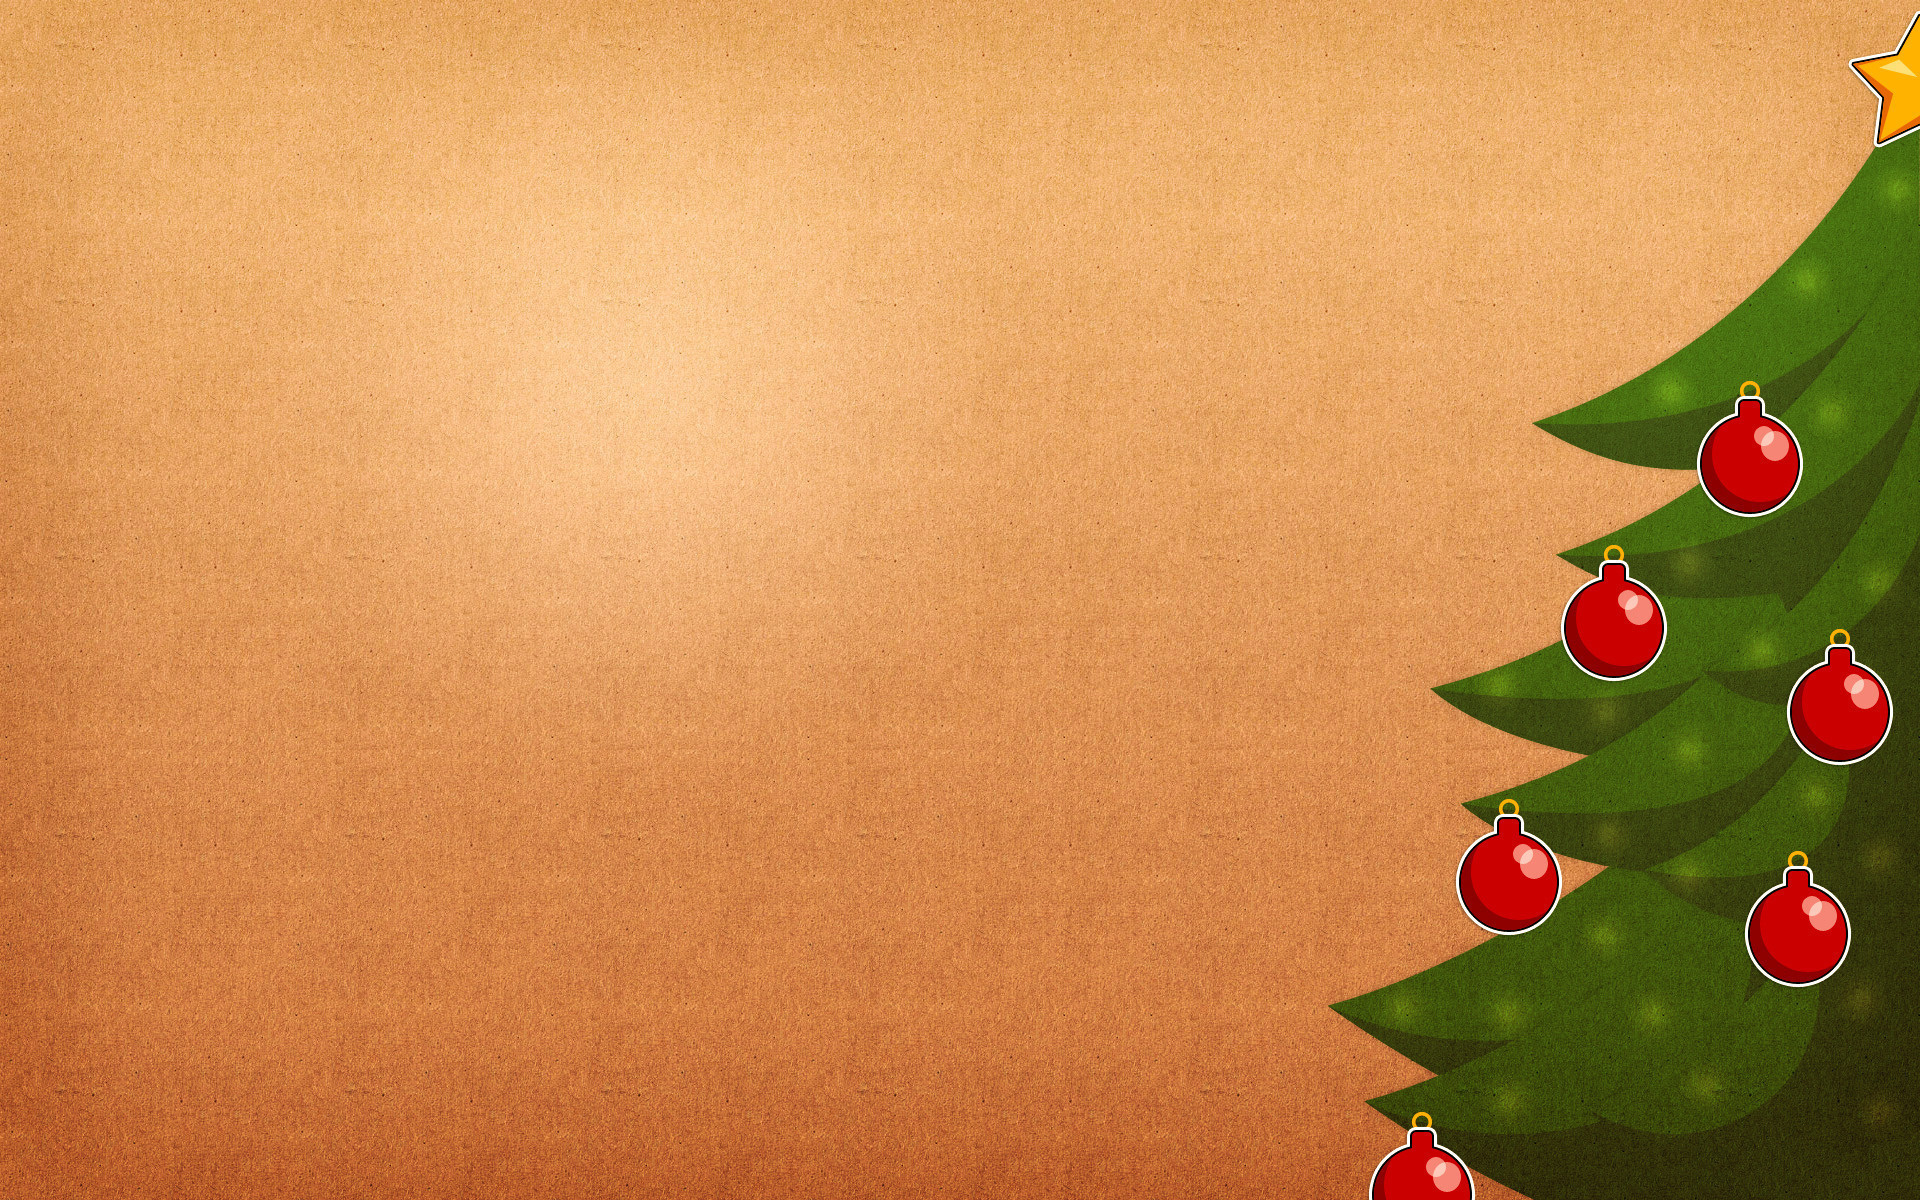 textures, New Year, Christmas texture, Christmas and New Year tree texture background